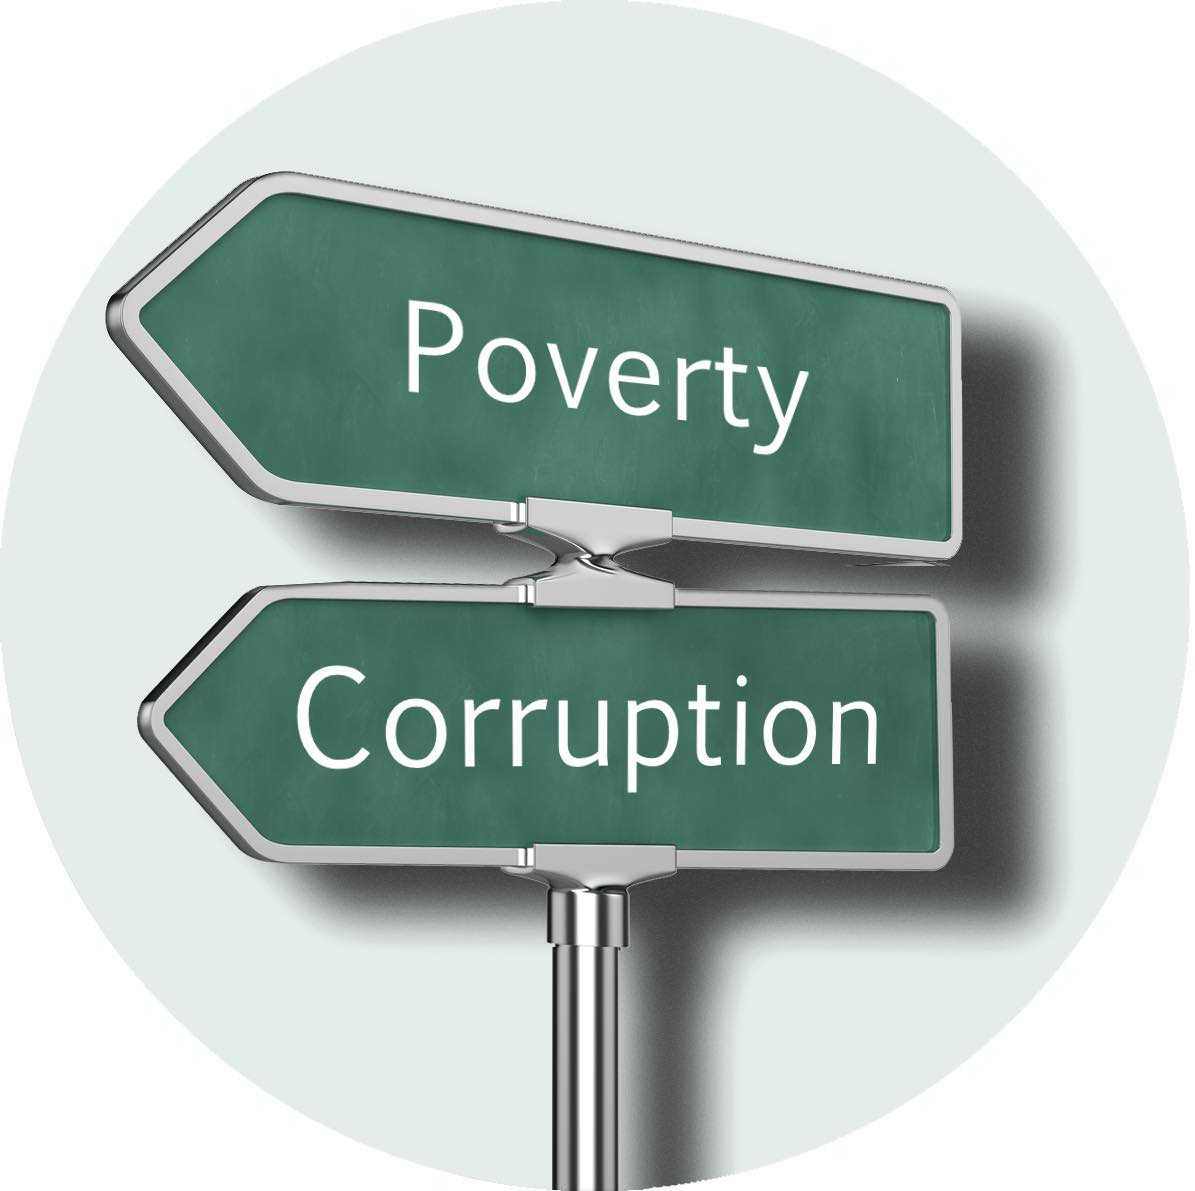 On Poverty and Corruption